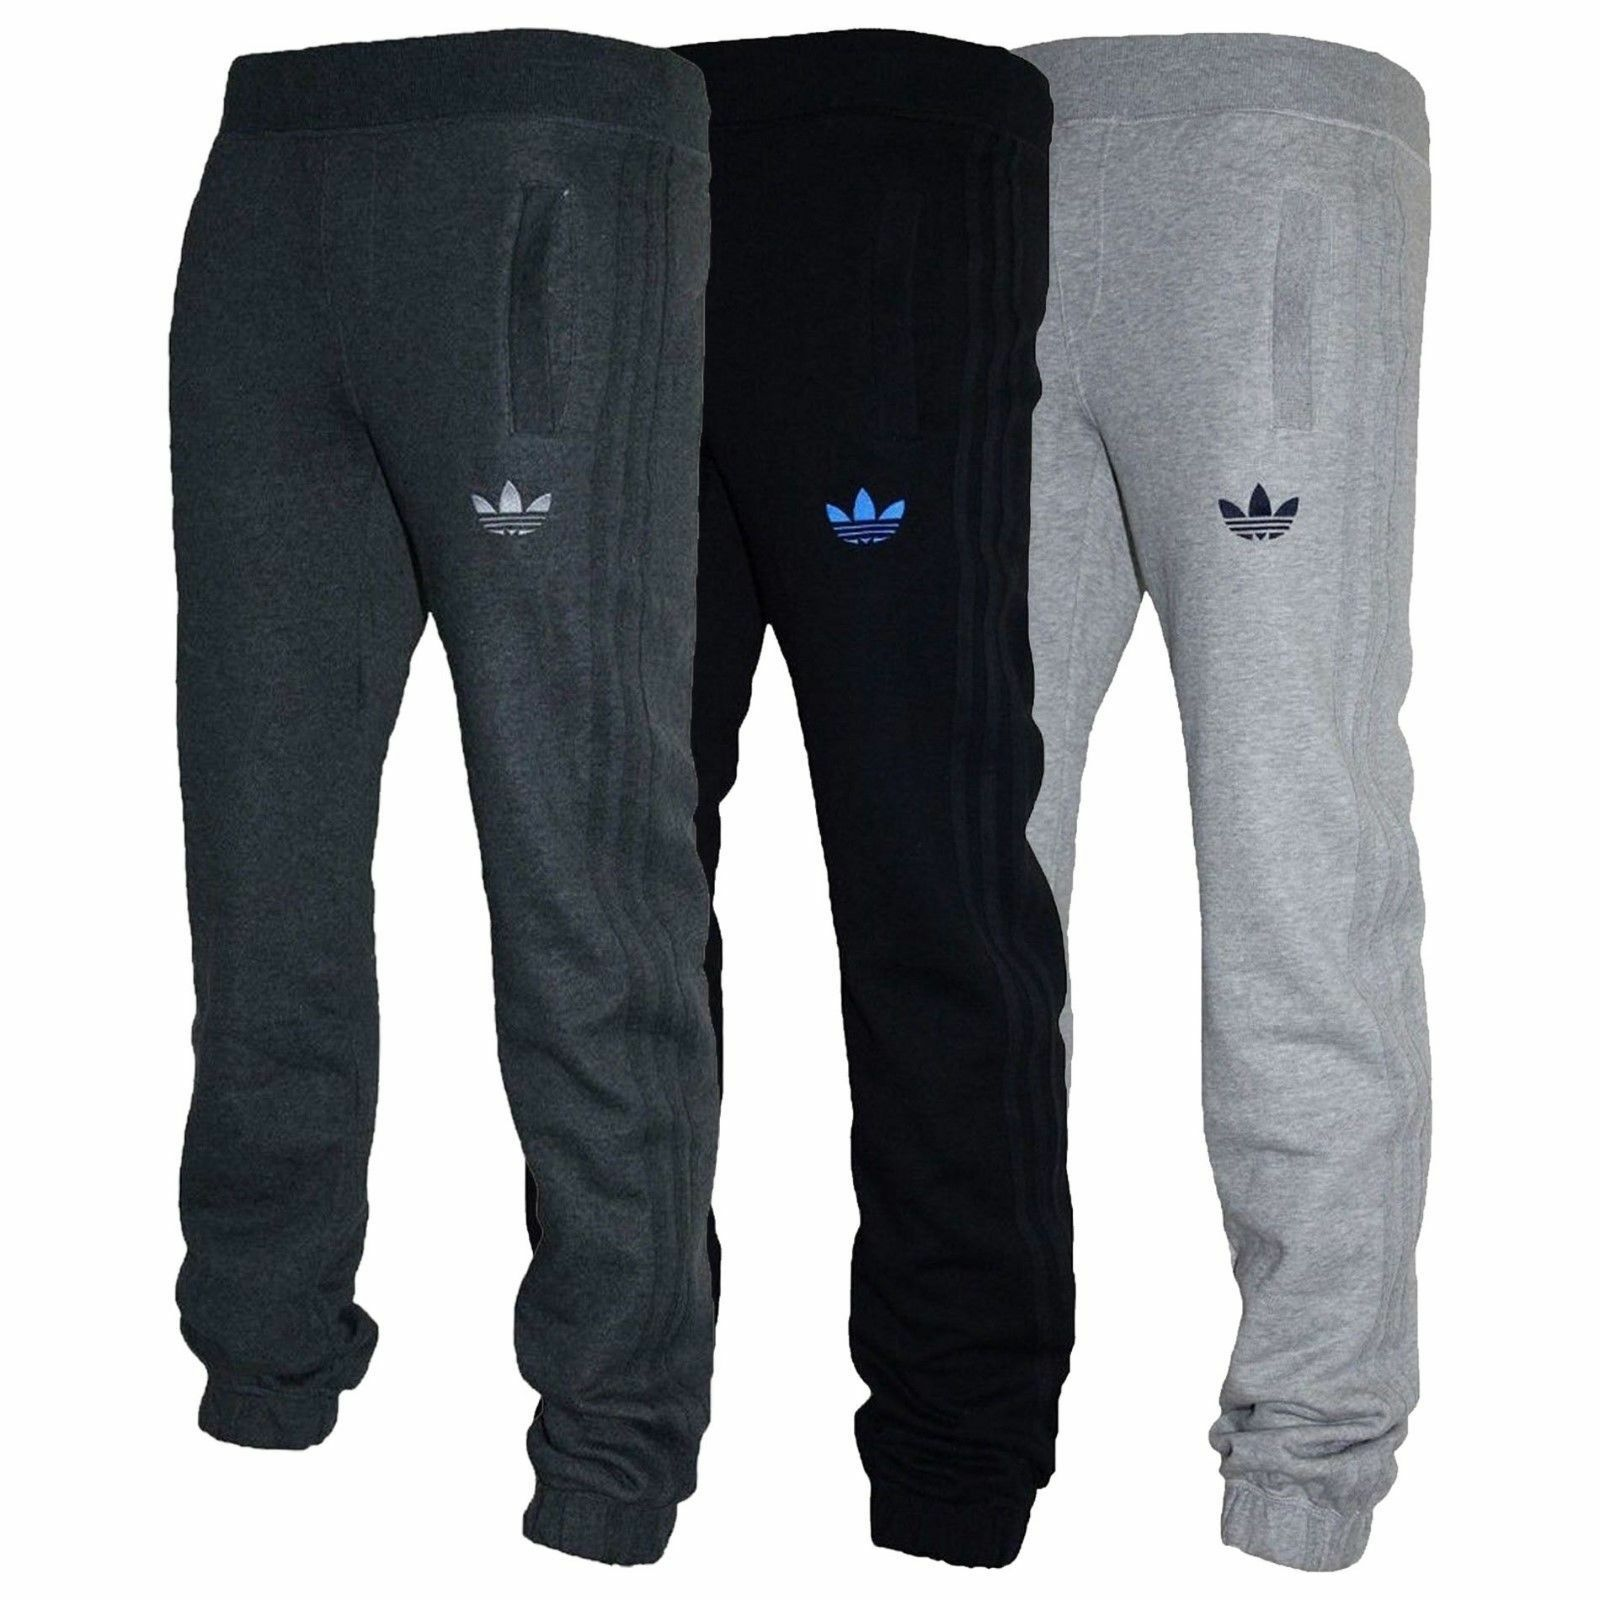 Details about ✅24hr DELIVERY✅ ADIDAS Men's SPO Sweat pants Fleece Track Bottoms Joggers rrp£45